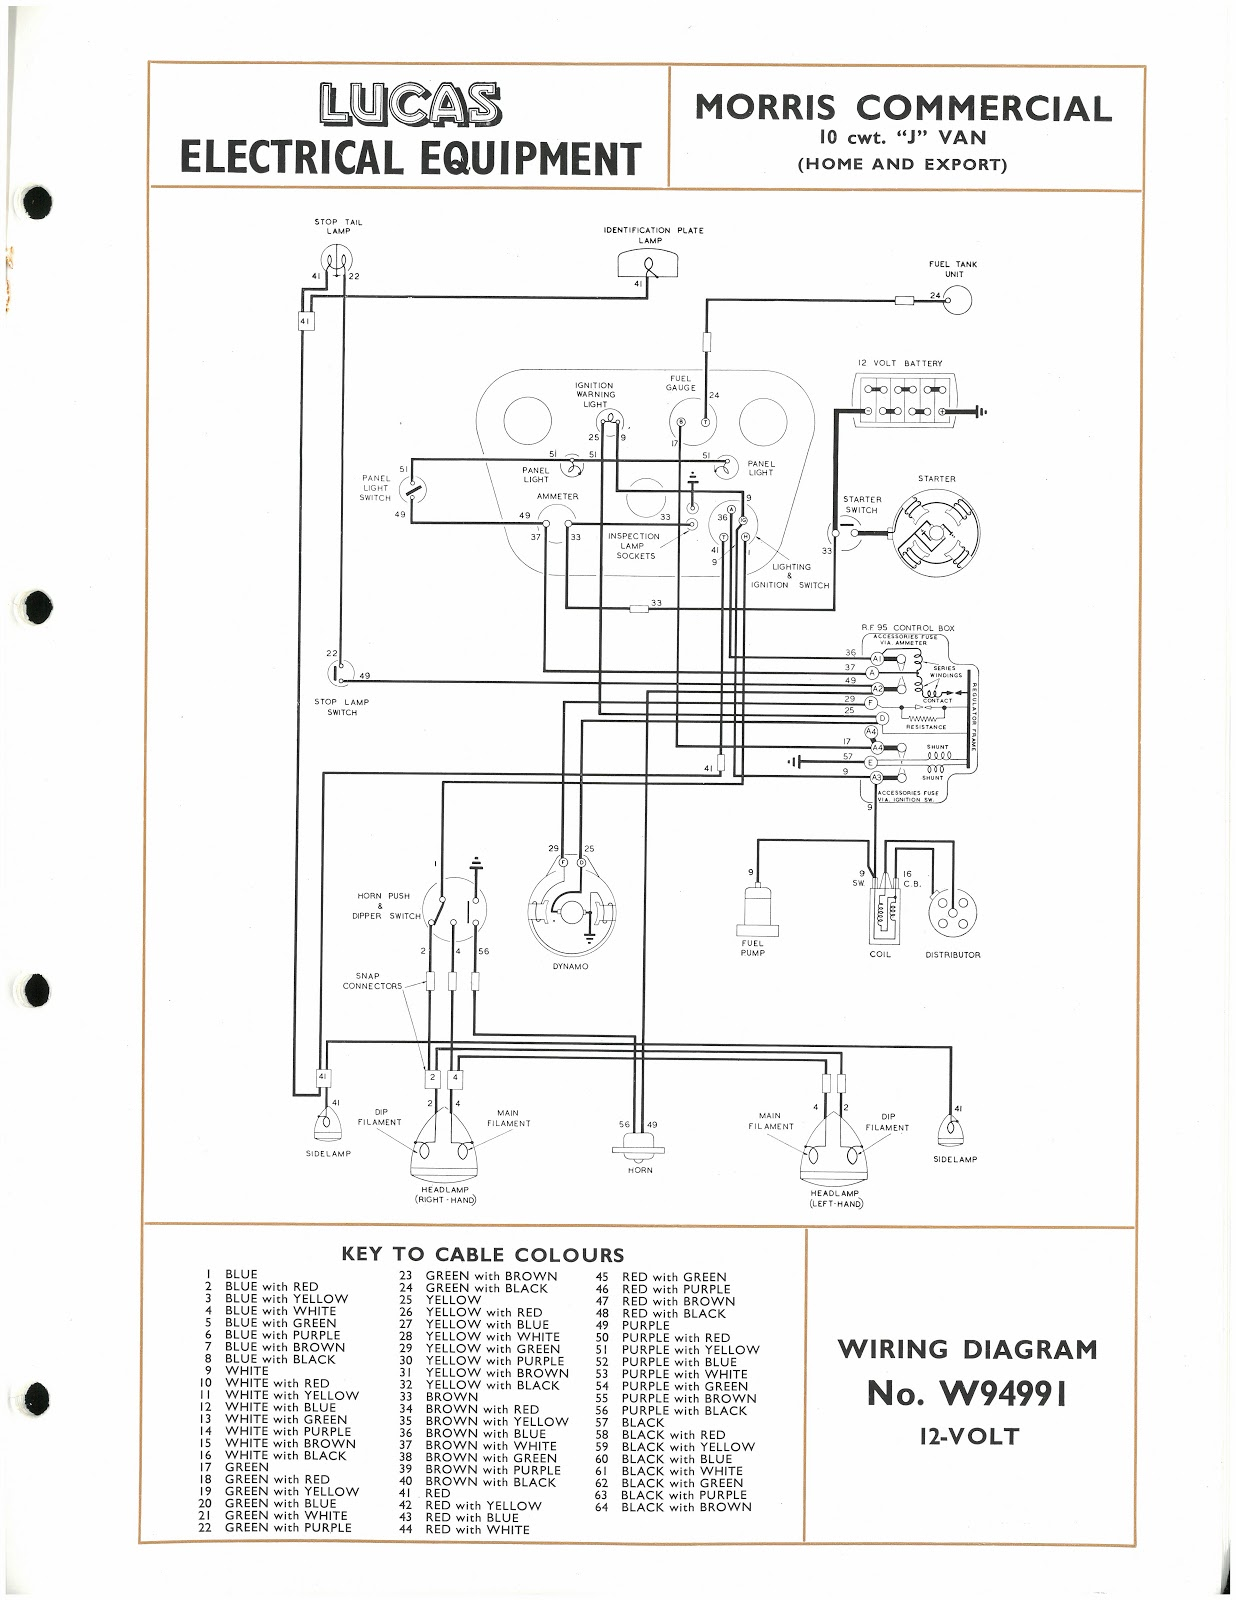 196 mga wiring diagram wiring diagram Mgb Wiring Diagram 196 mga wiring diagram wiring diagram196 mga wiring diagram wiring diagrammga wiring diagram for 1960 all